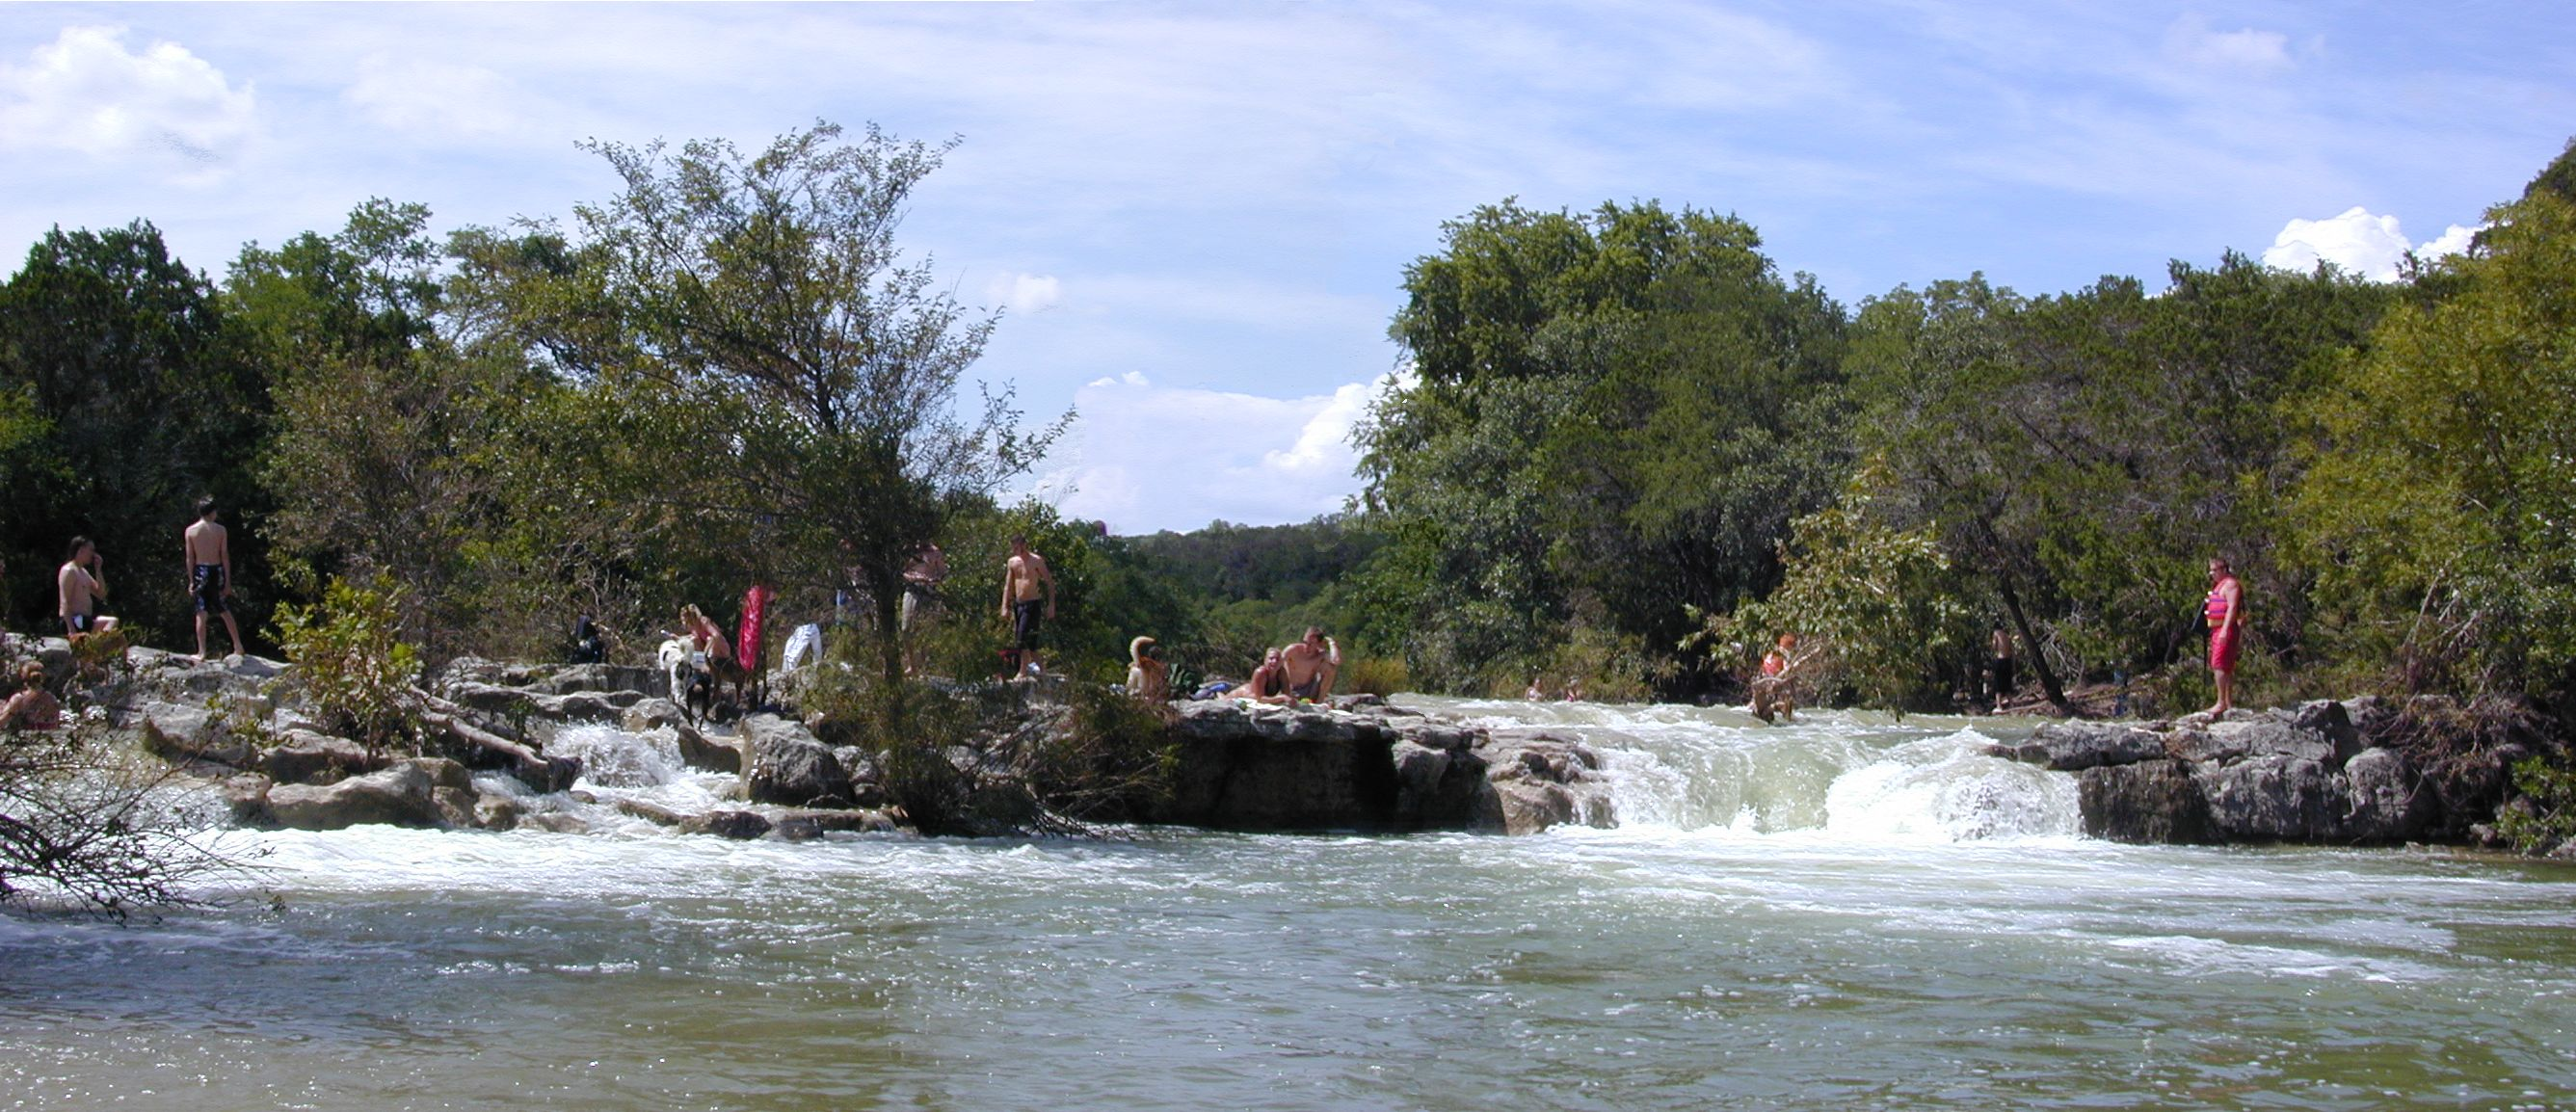 Swimspotaustin herokuapp additionally 20 Excellent Experiences For Every True Austinite And Our Visitors as well Austin Greenbelt Guide also 1155 Barton springs 3Ffull 1 also Watch. on barton springs